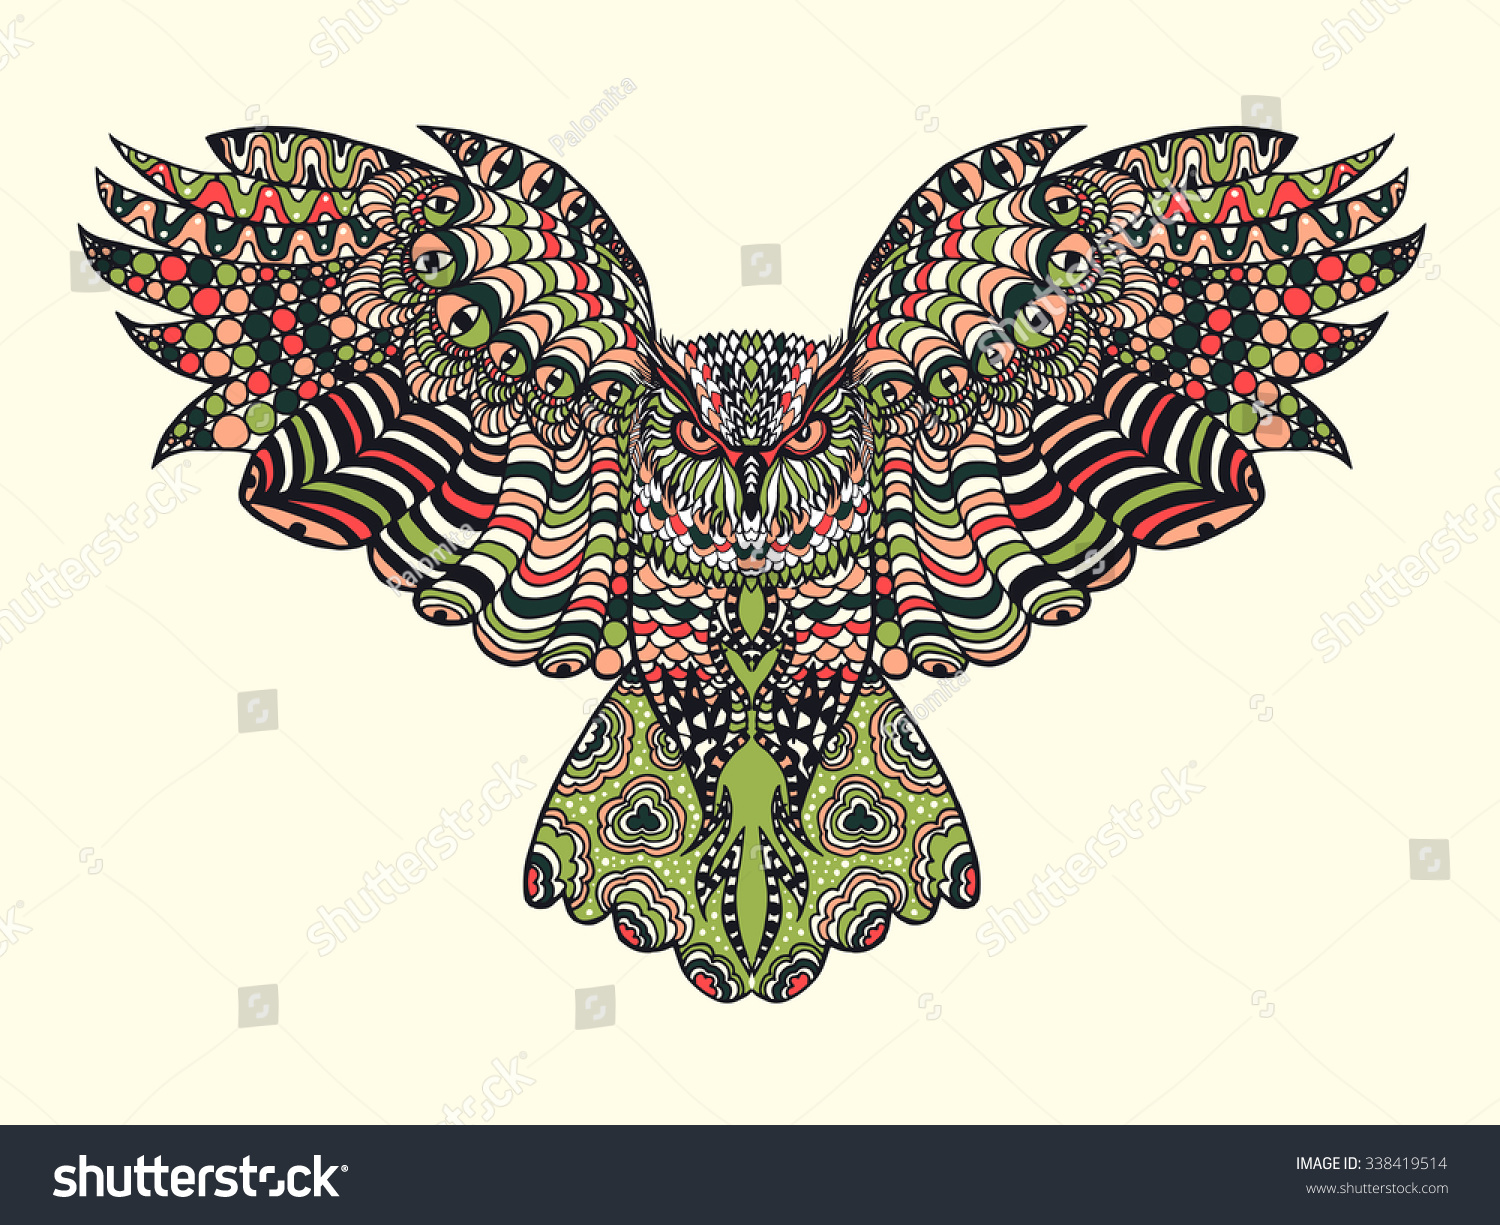 Stock Vector Zentangle Stylized Eagle Owl Colorful Hand Drawn Doodle E...